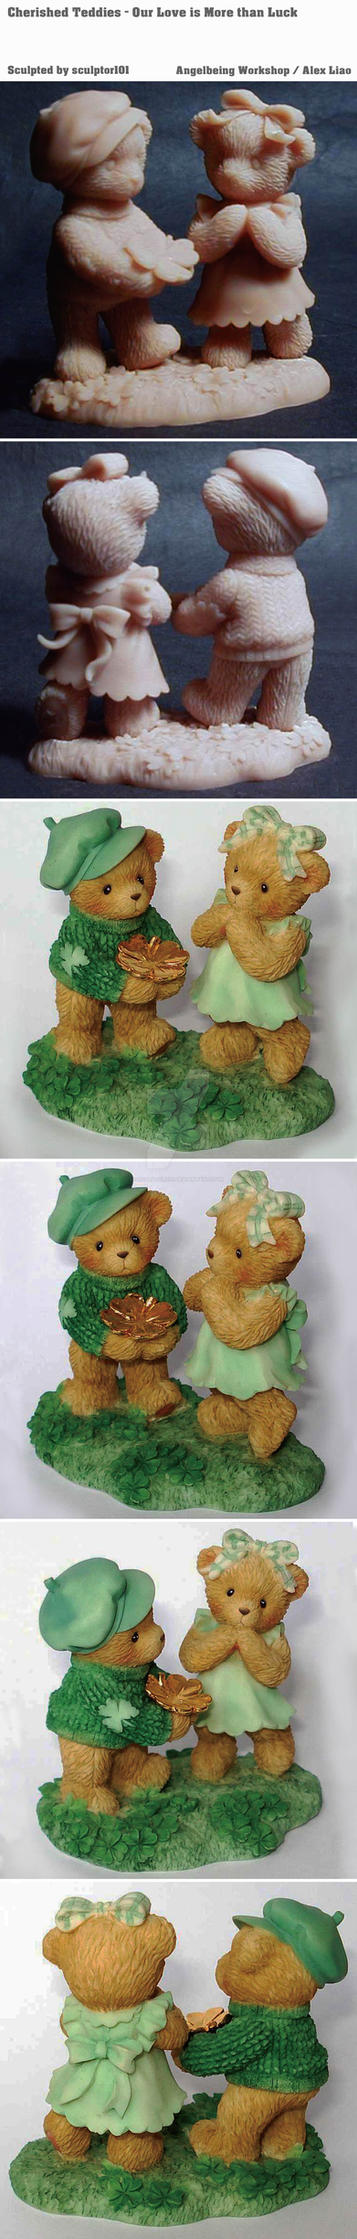 Cherished Teddies - Our Love is More than Luck by sculptor101